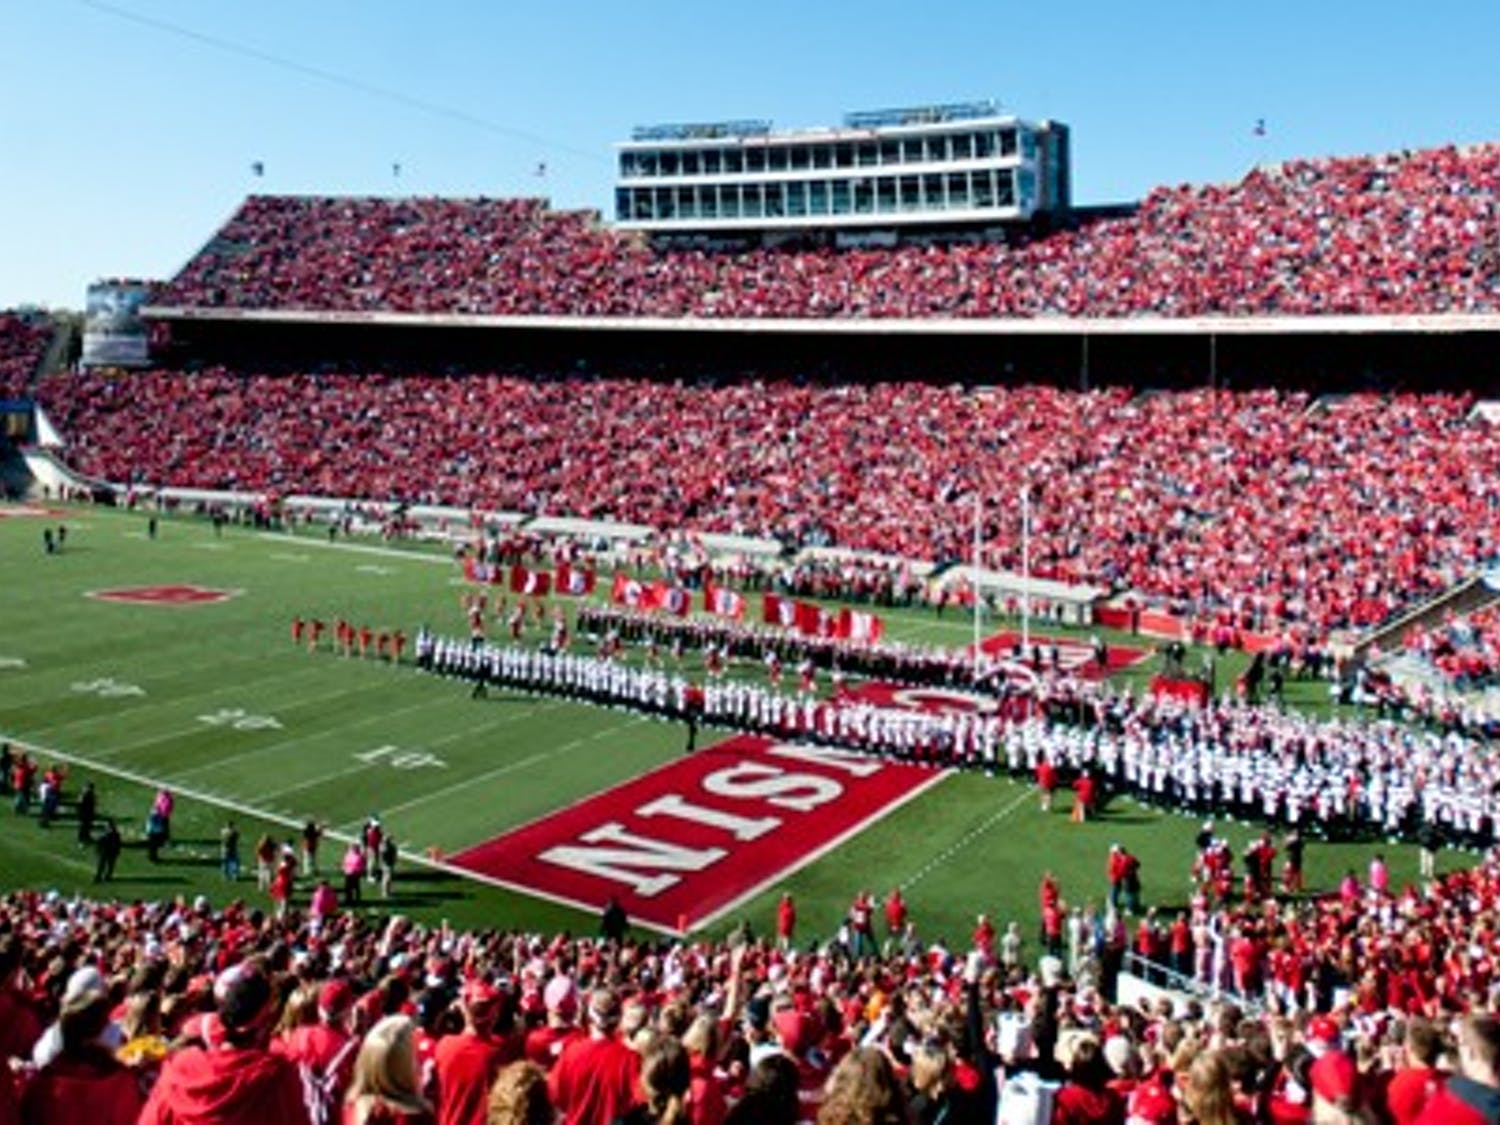 Badger fans reported problems such as long lines and shortages of food and beverages at concession stands in Camp Randall during last Saturday's game against UMass.